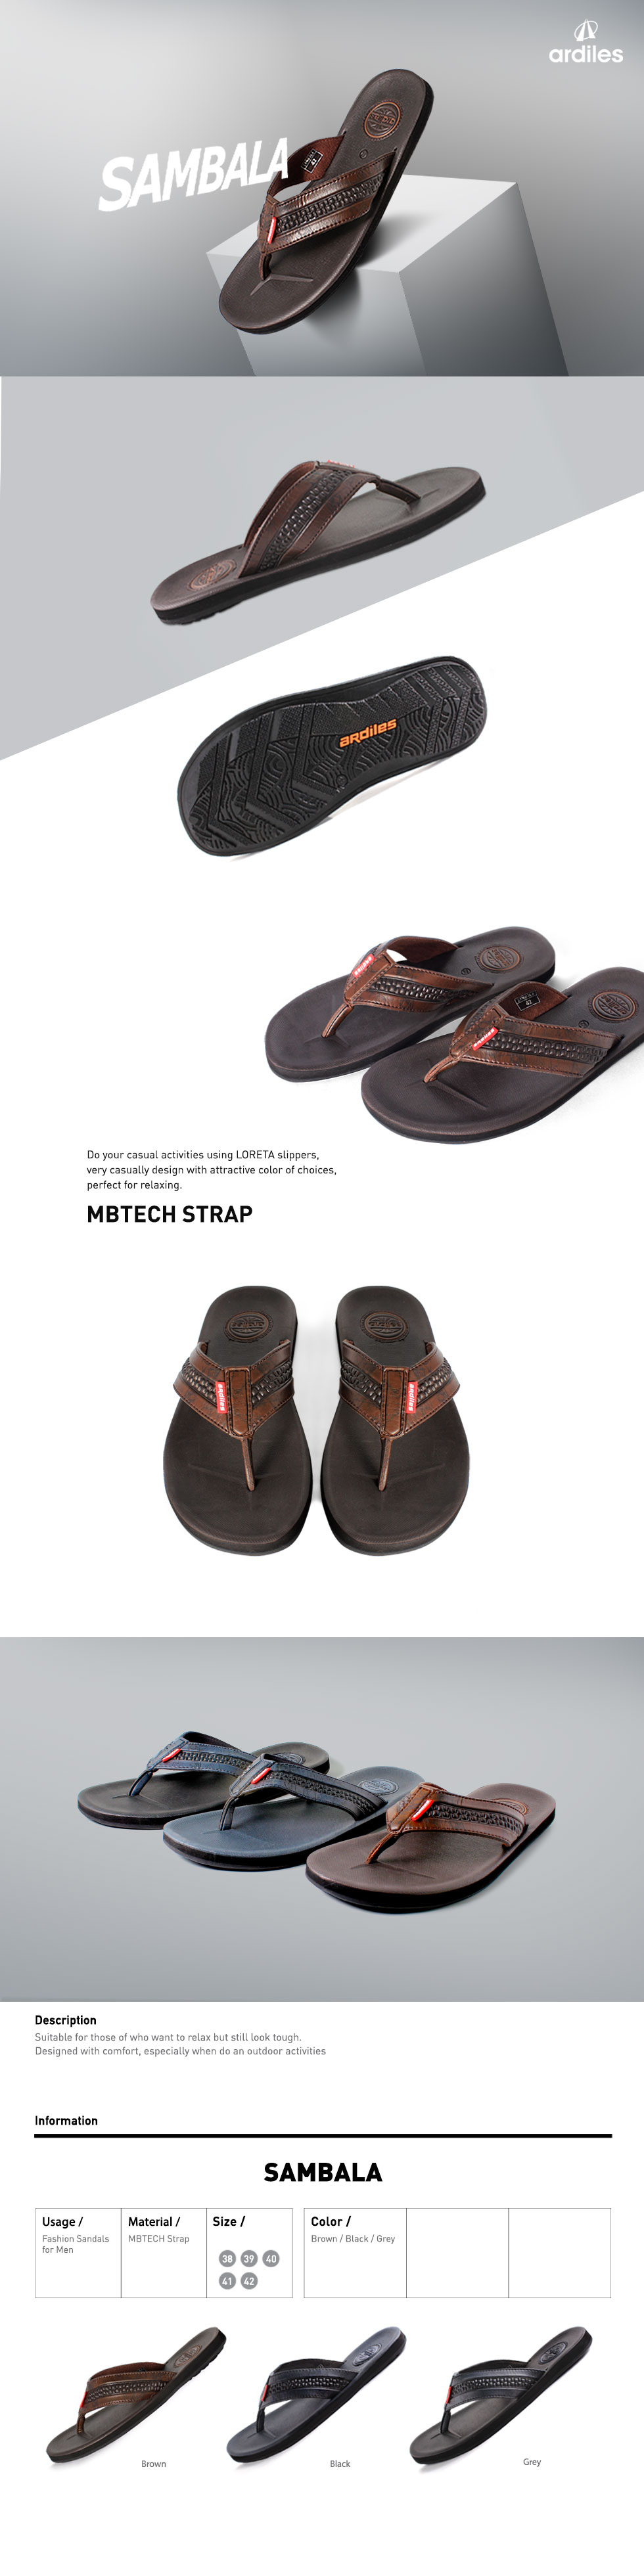 Buy Ardiles Clearance Sale Specialunisex Shoes And Sandals Estelle Women Running Hitam 39 Opsi